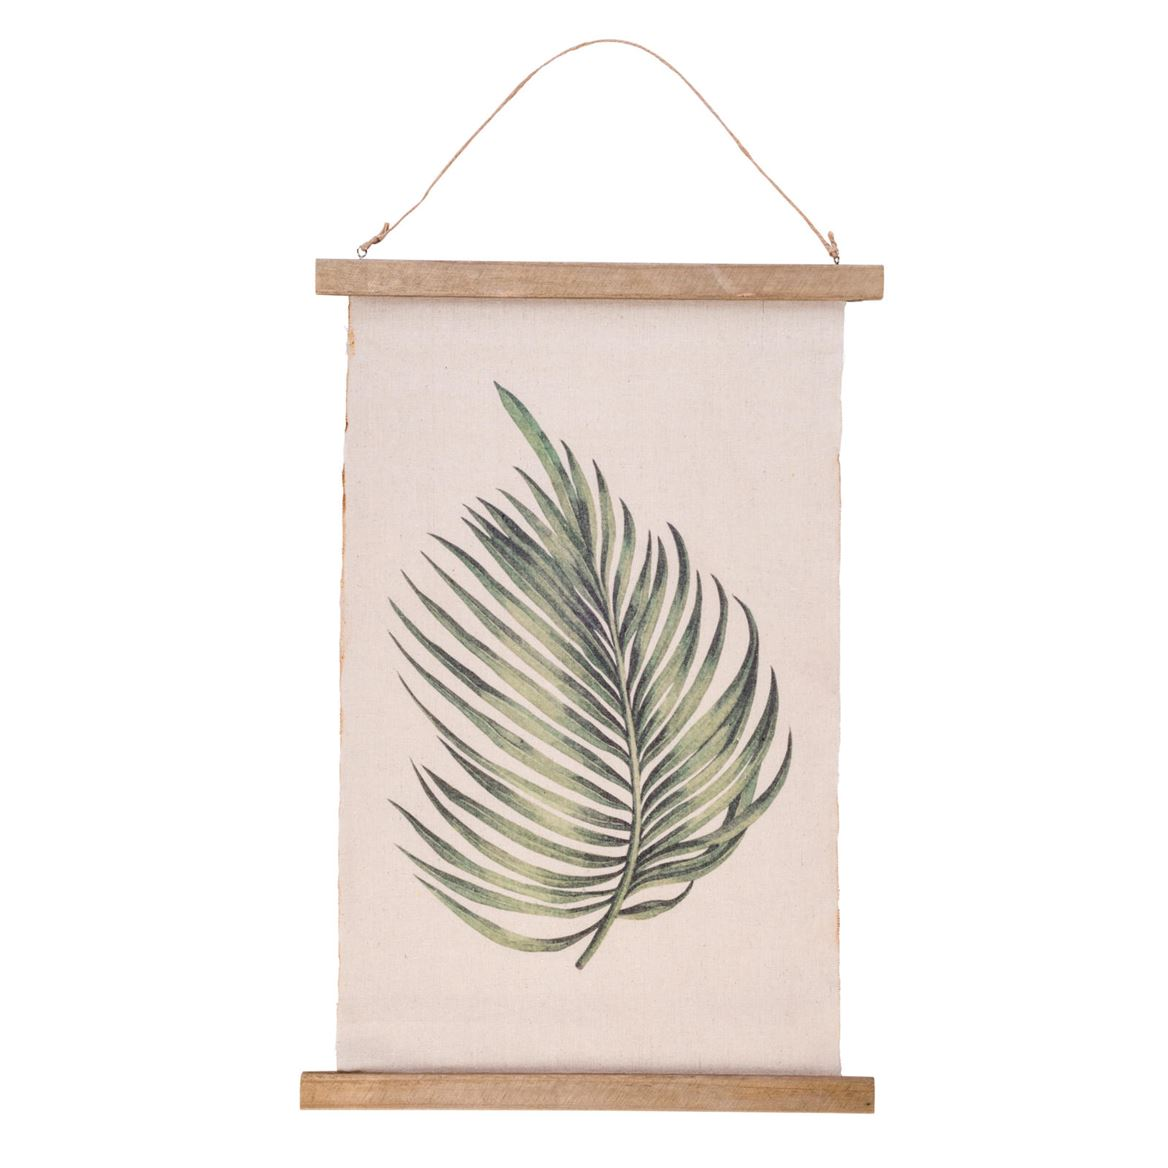 Décoration Murale Naturelle Fabric Décoration Murale Naturel H 60 X Larg 40 Cm